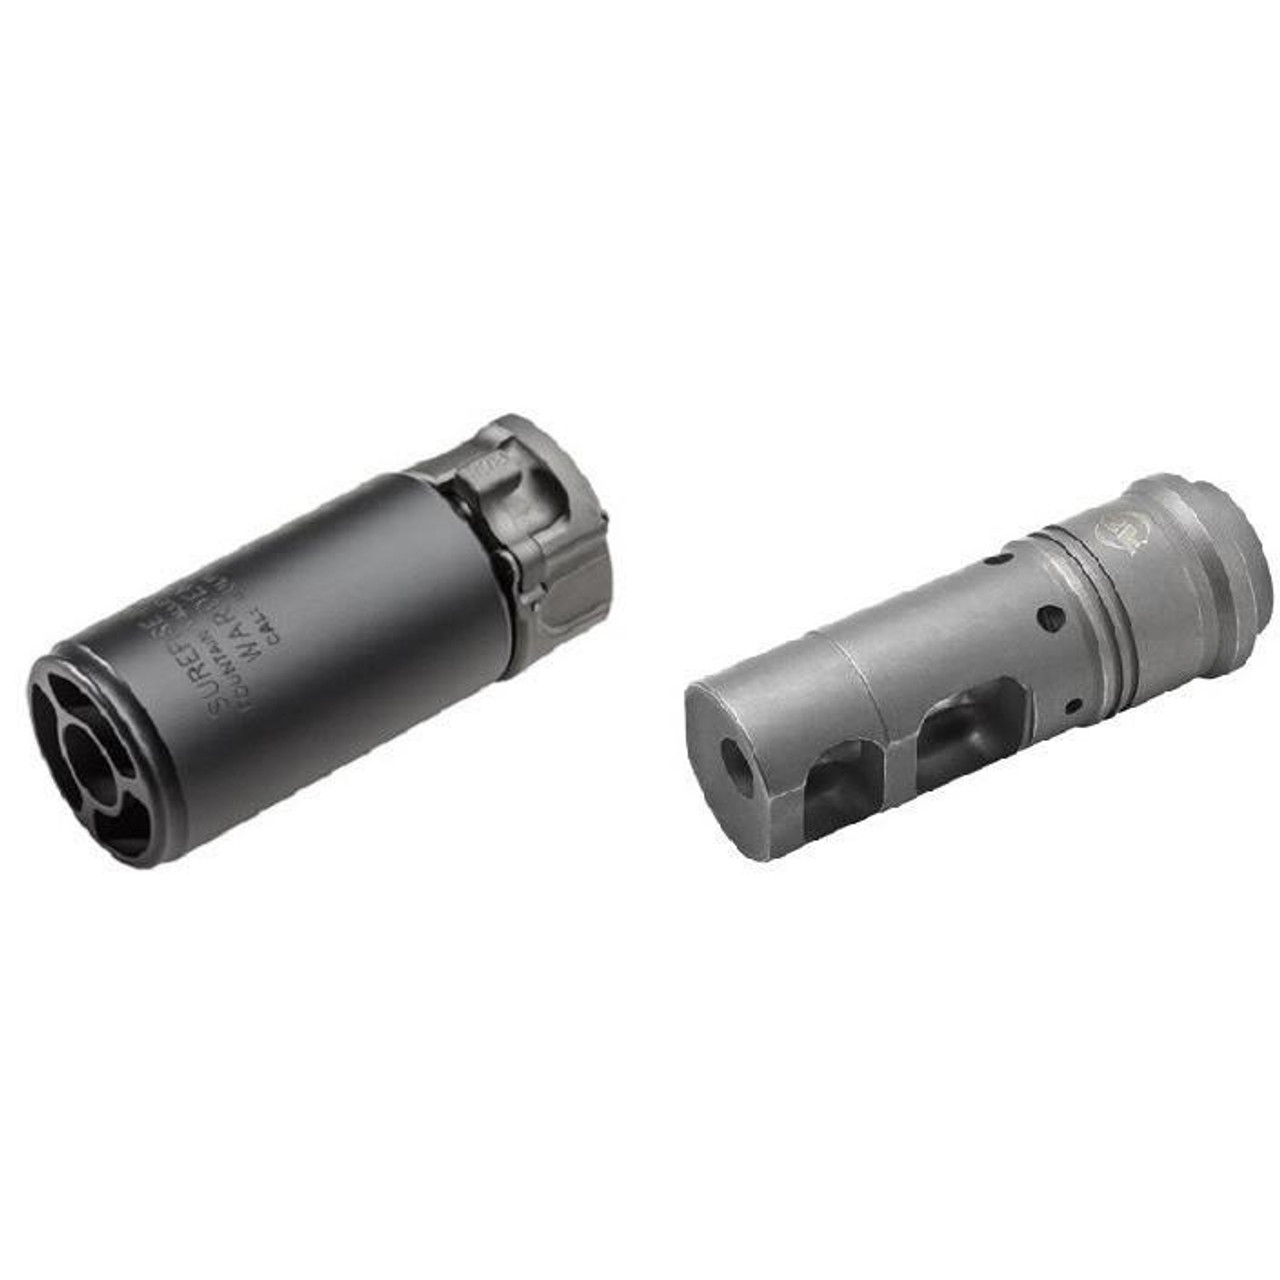 Surefire WARDEN Blast Diffuser and MB556 Muzzle Brake Combo